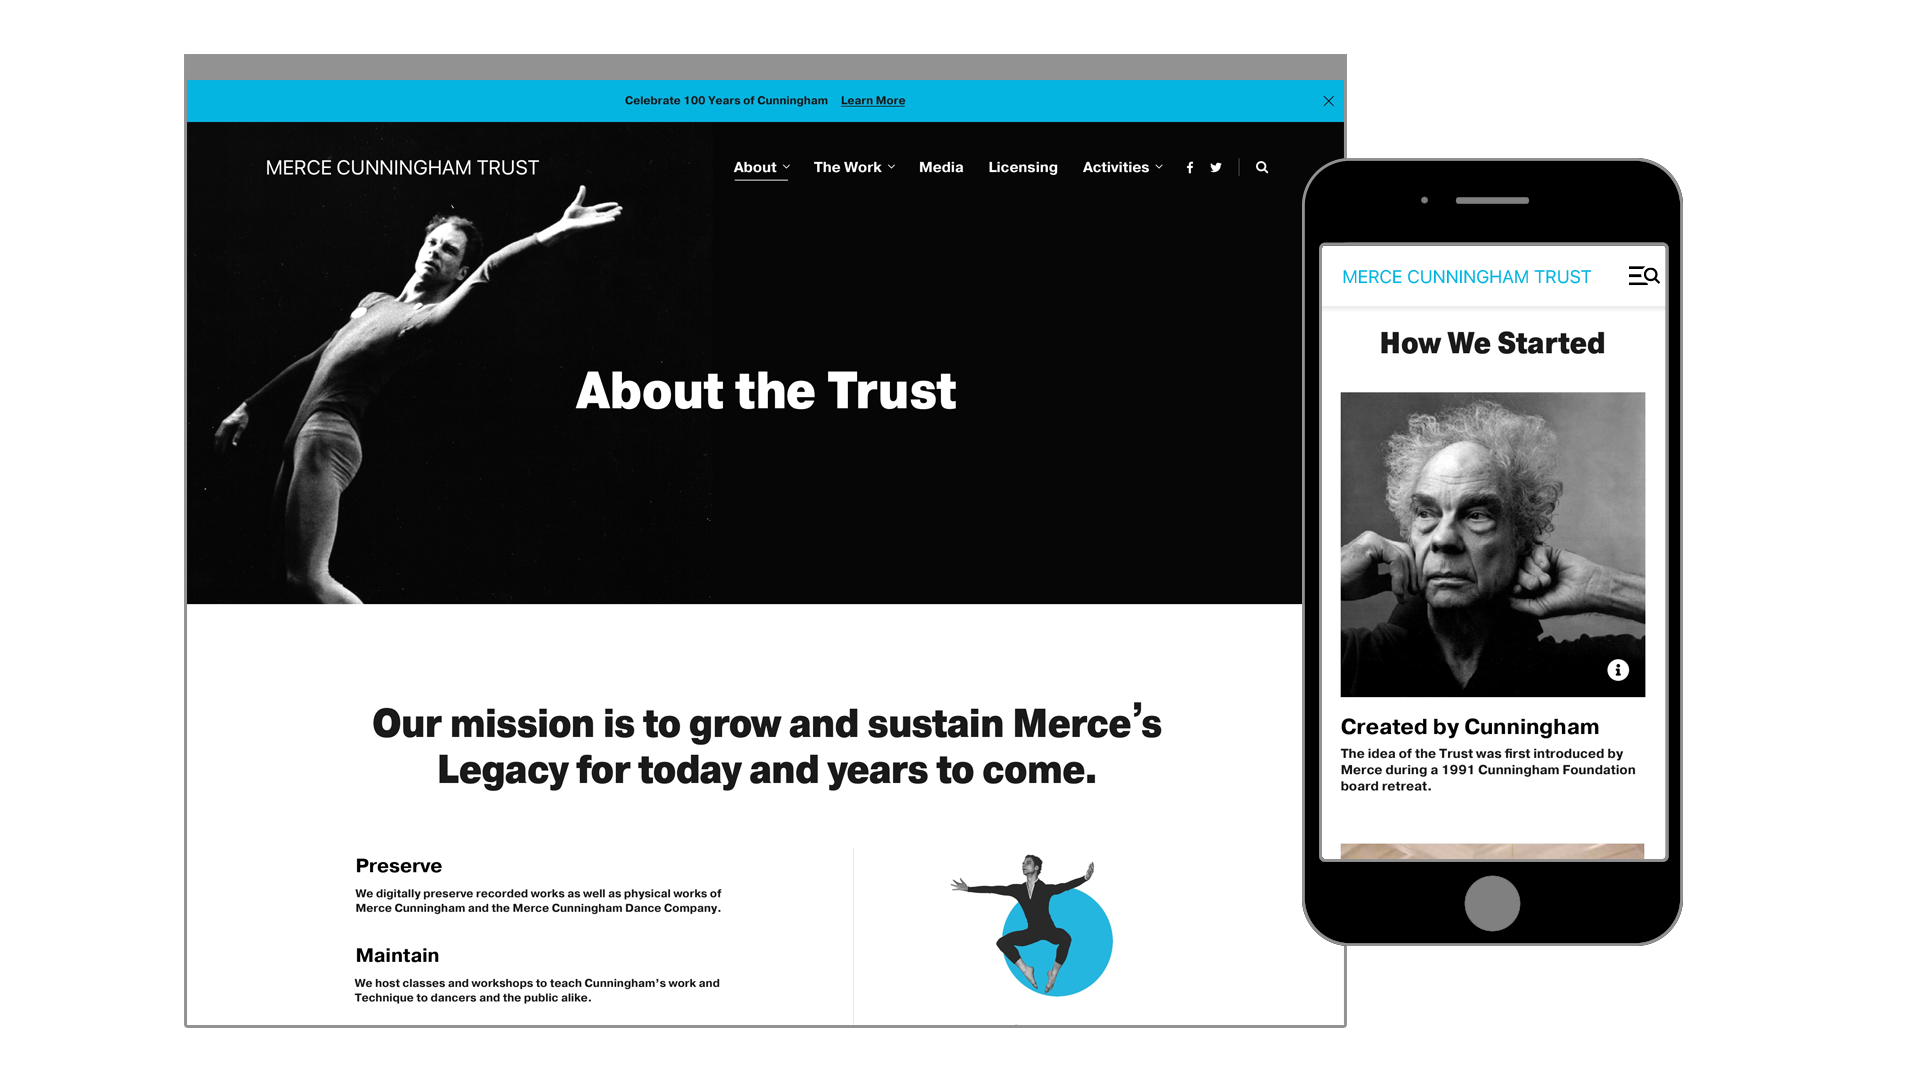 Merce Cunningham Trust About Page Mockups for Desktop and Mobile